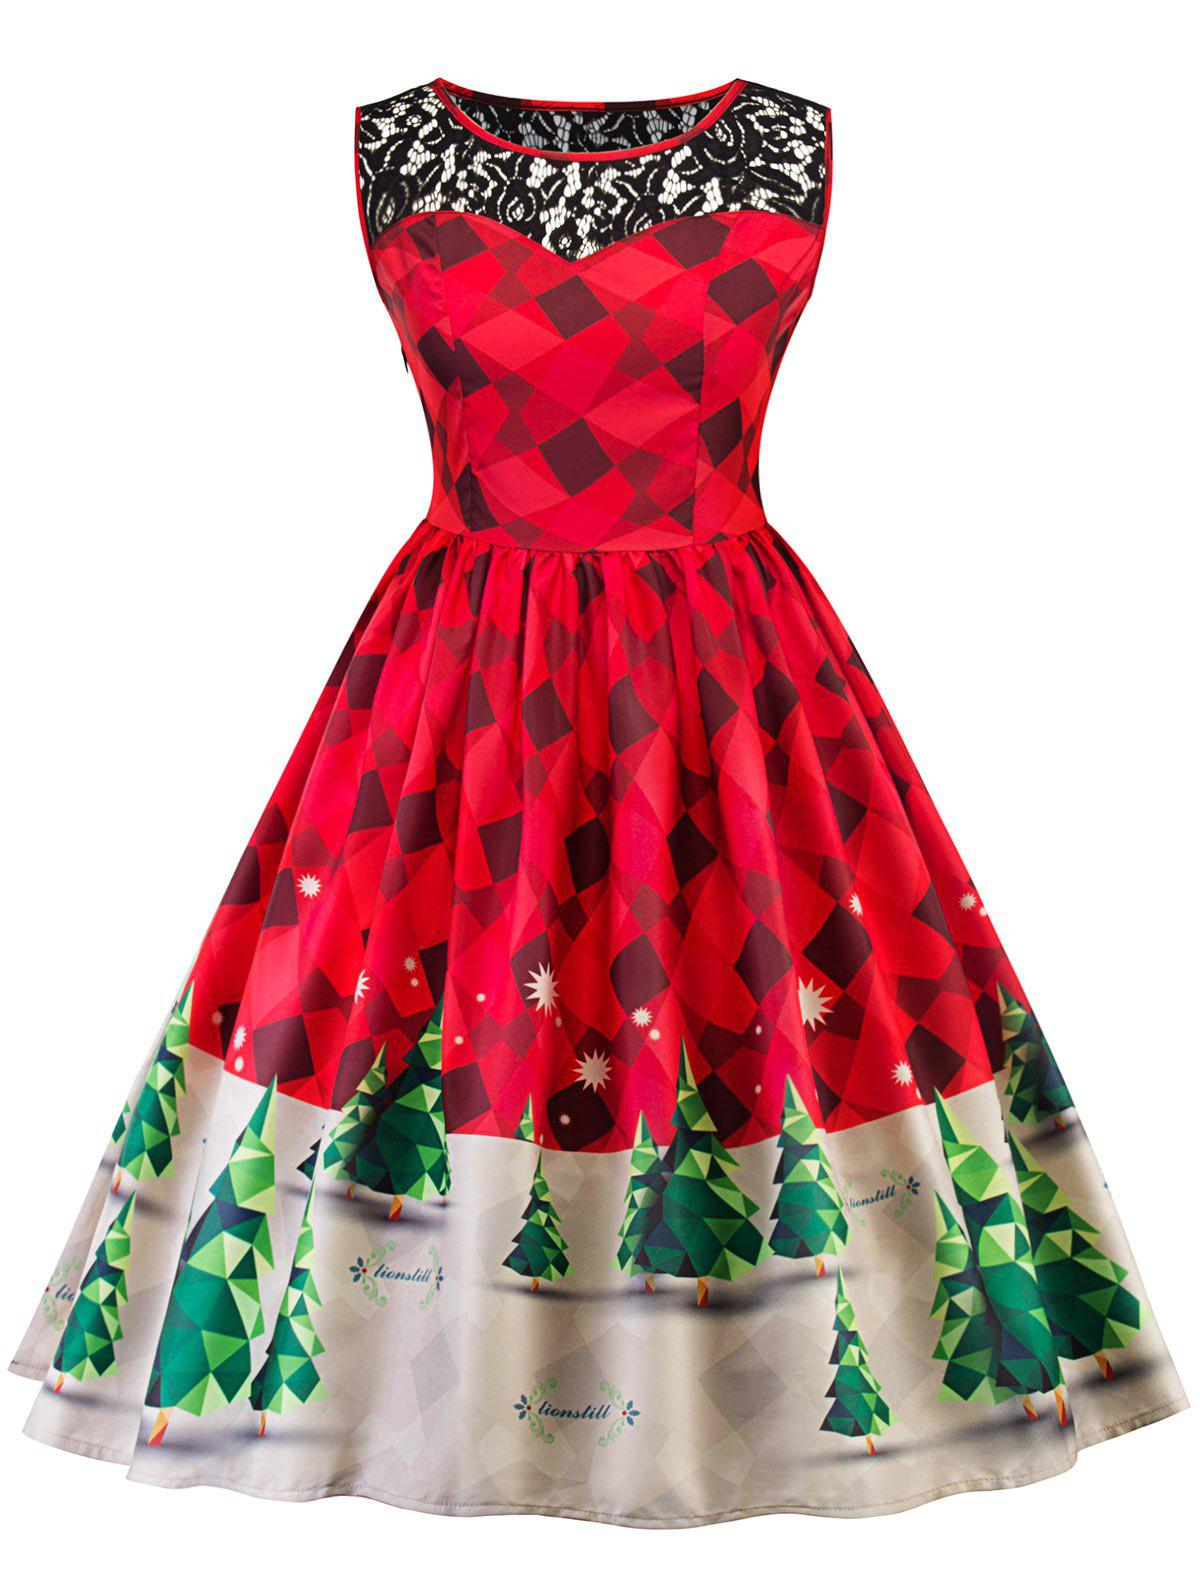 Vintage Christmas Lace Insert Pin Up Skater DressWOMEN<br><br>Size: M; Color: RED; Style: Vintage; Material: Polyester; Silhouette: A-Line; Dresses Length: Knee-Length; Neckline: Round Collar; Sleeve Length: Sleeveless; Pattern Type: Patchwork,Print; With Belt: No; Season: Fall,Spring; Weight: 0.2800kg; Package Contents: 1 x Dress;